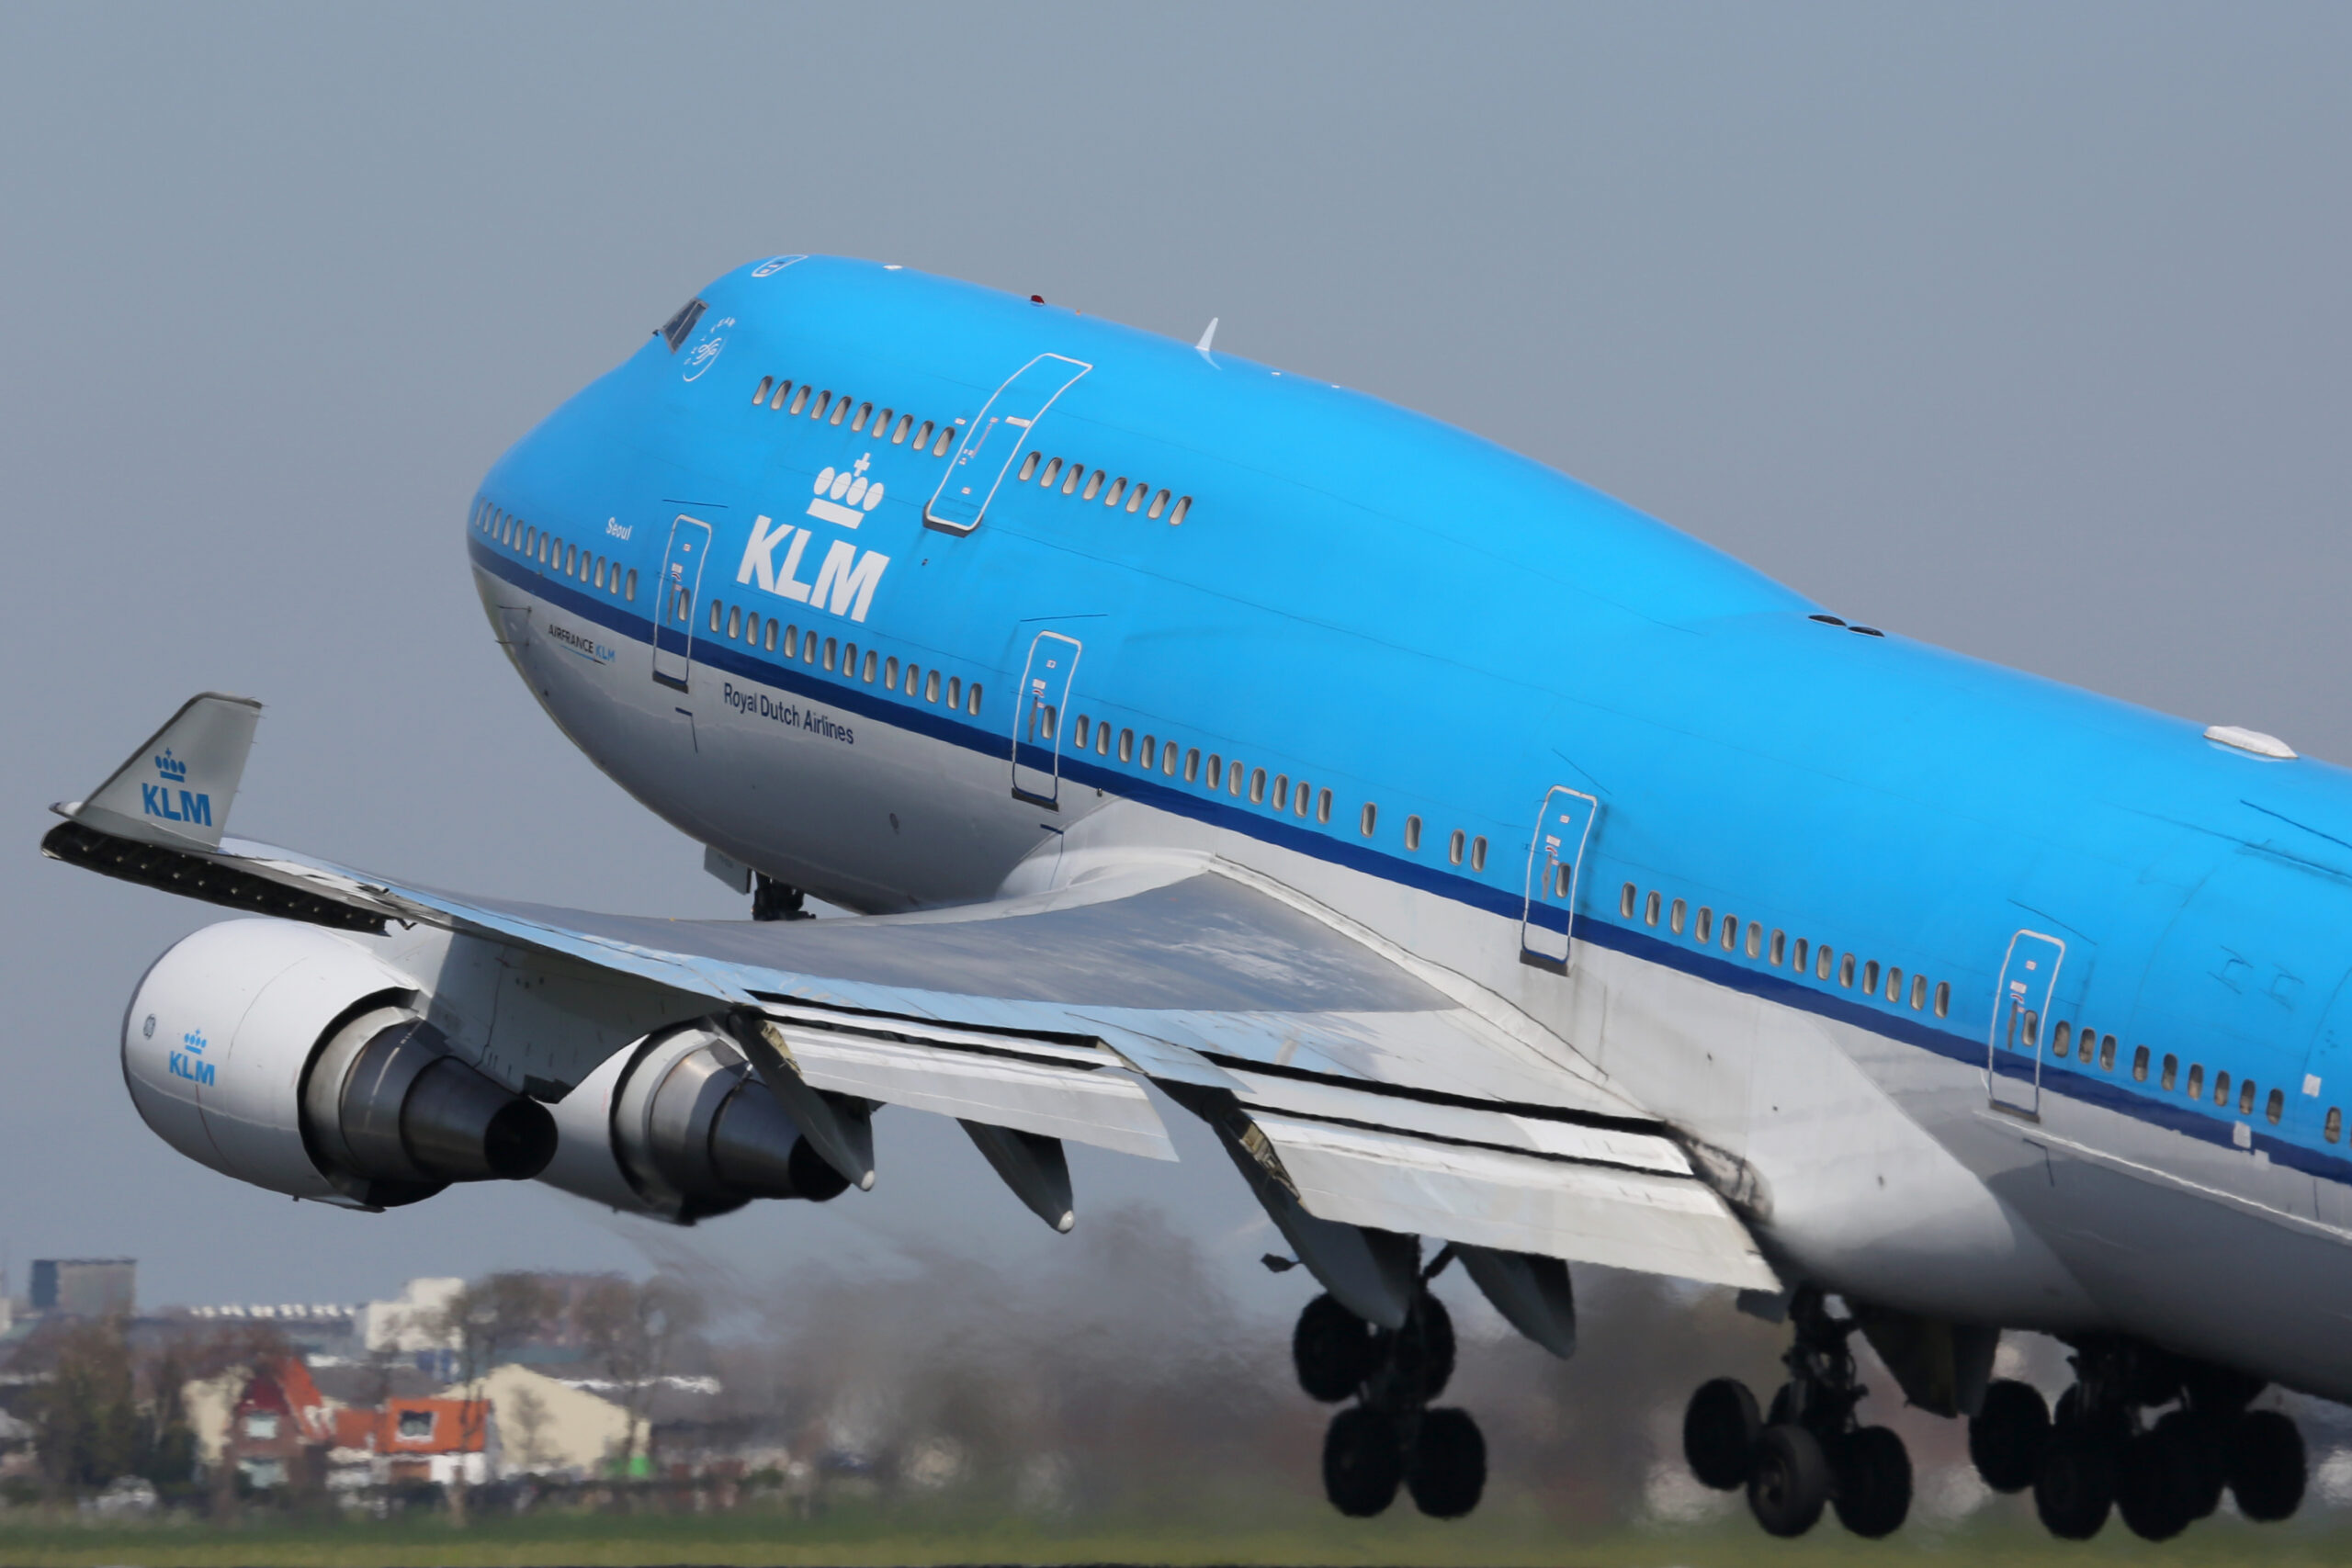 A KLM Royal Dutch Airlines Boeing 747-400 taking off on April 21, 2015 in Amsterdam. KLM is the largest airline of the Netherlands with its hub at Amsterdam airport.